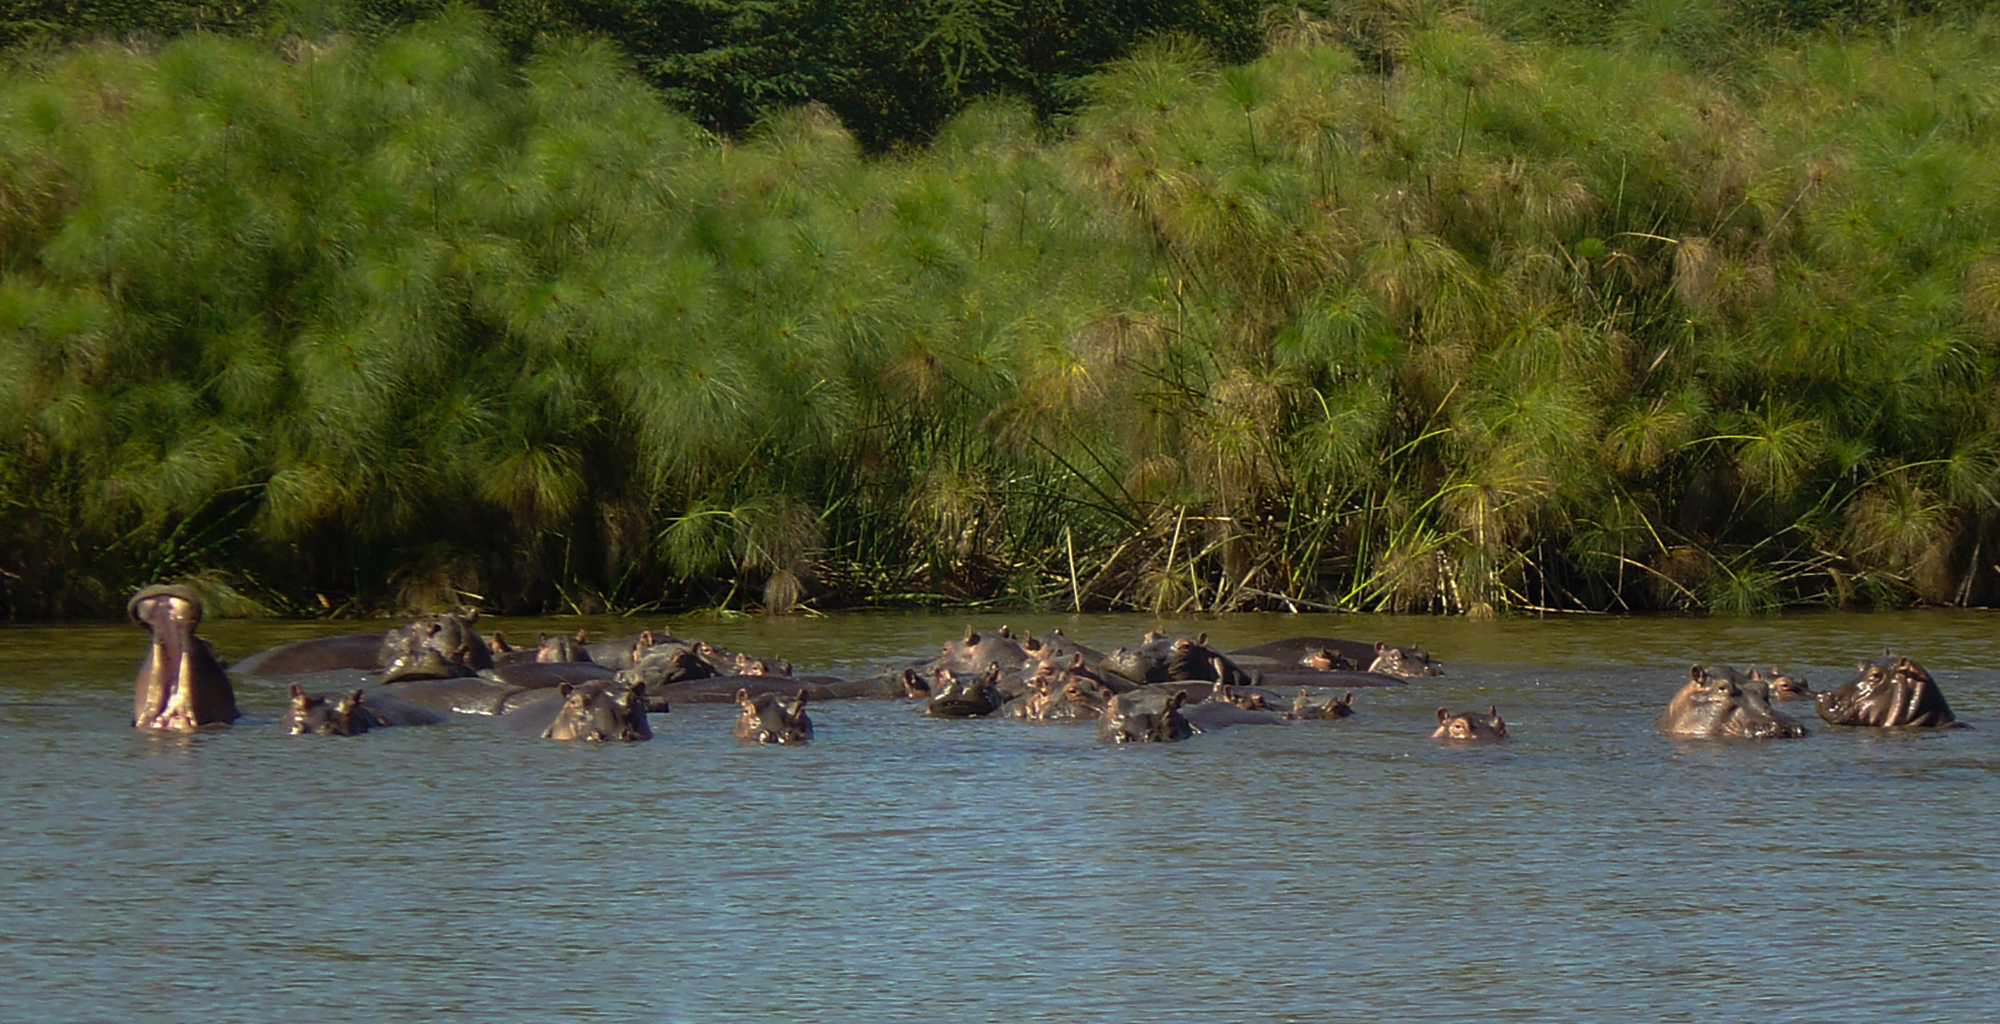 Kenya-Hippo-Point-Tower-Hippos-in-Water